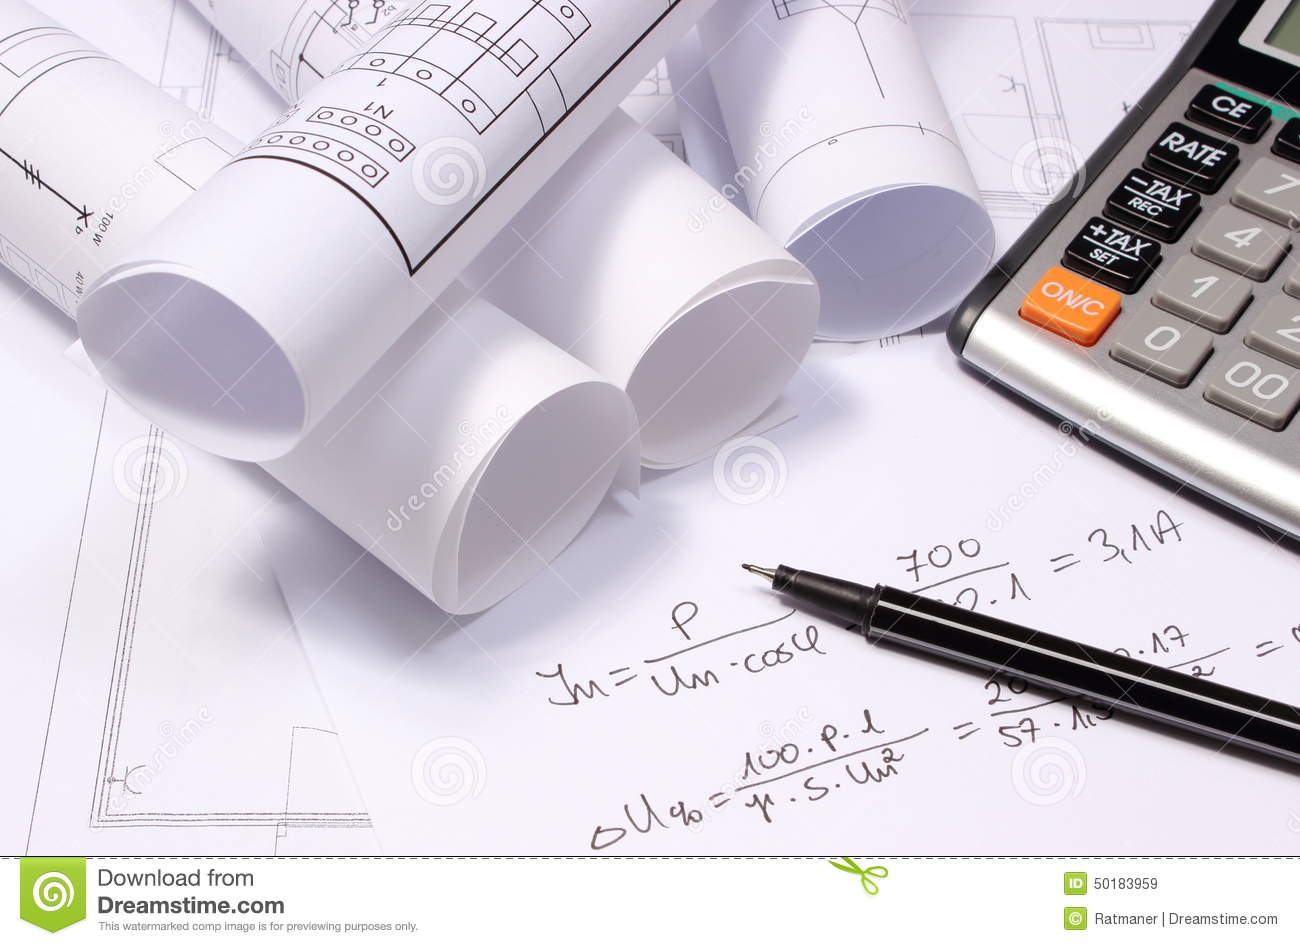 Rolled electrical diagrams calculator and mathematical calculations download rolled electrical diagrams calculator and mathematical calculations stock image image of mathematical ccuart Image collections